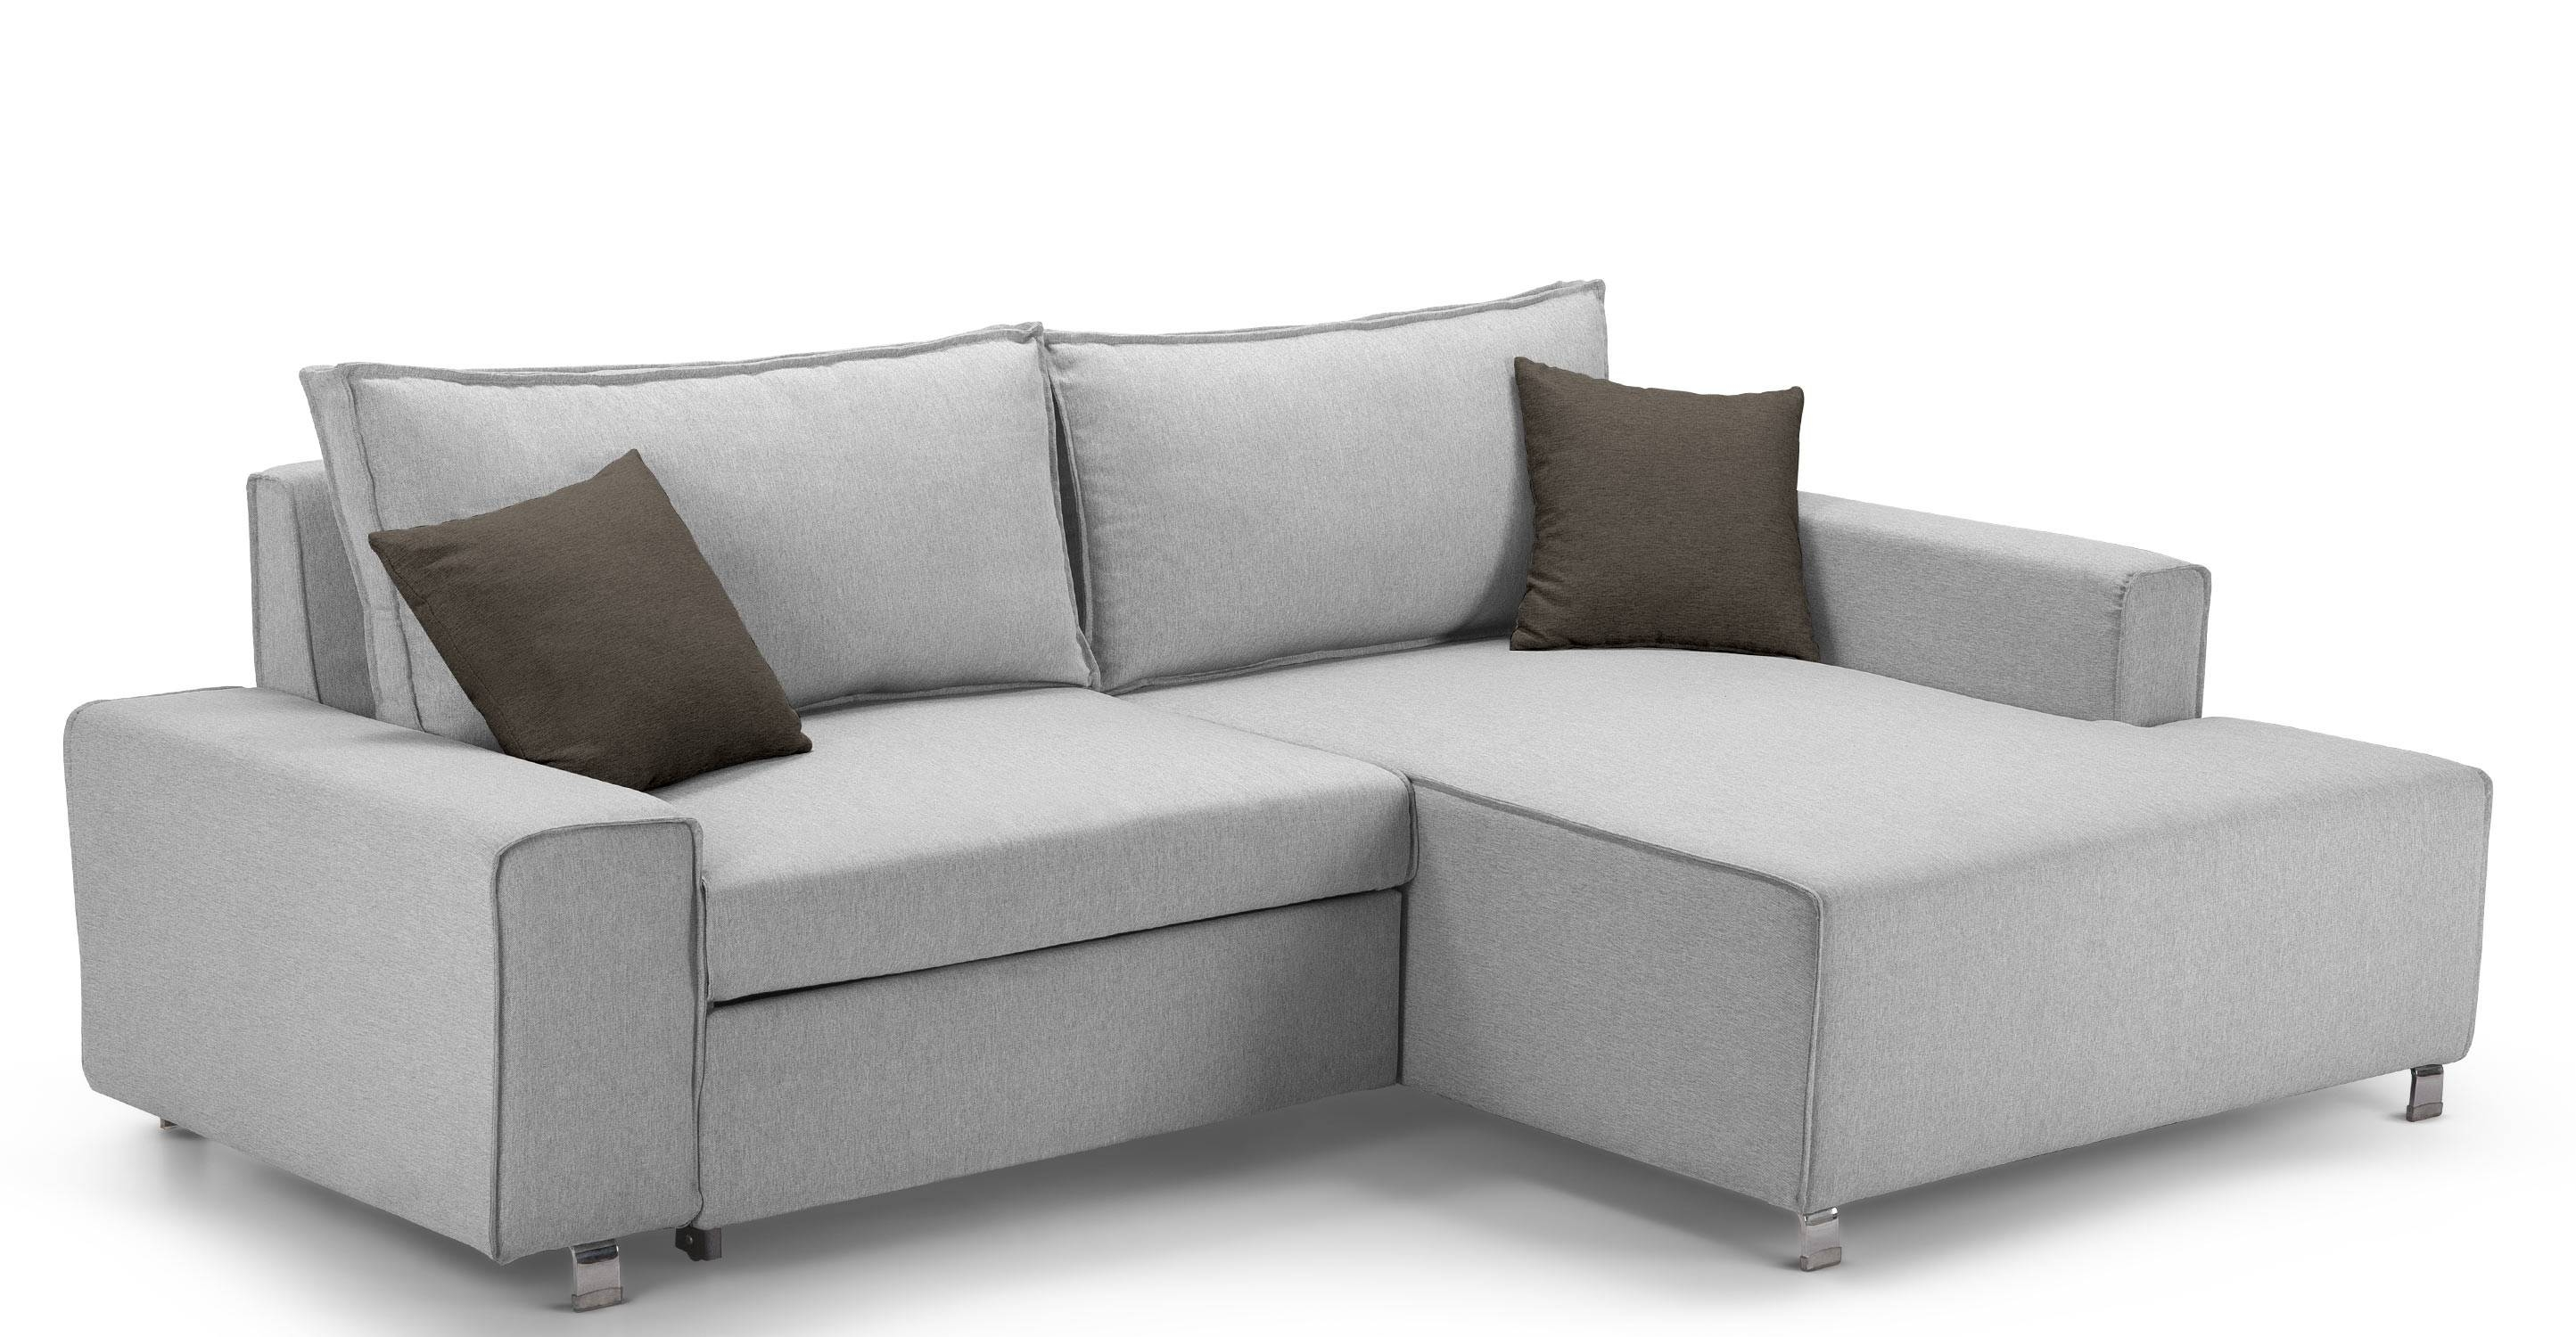 Sale On Sofas Corner Sofa Sale Sofa Hpricotcom